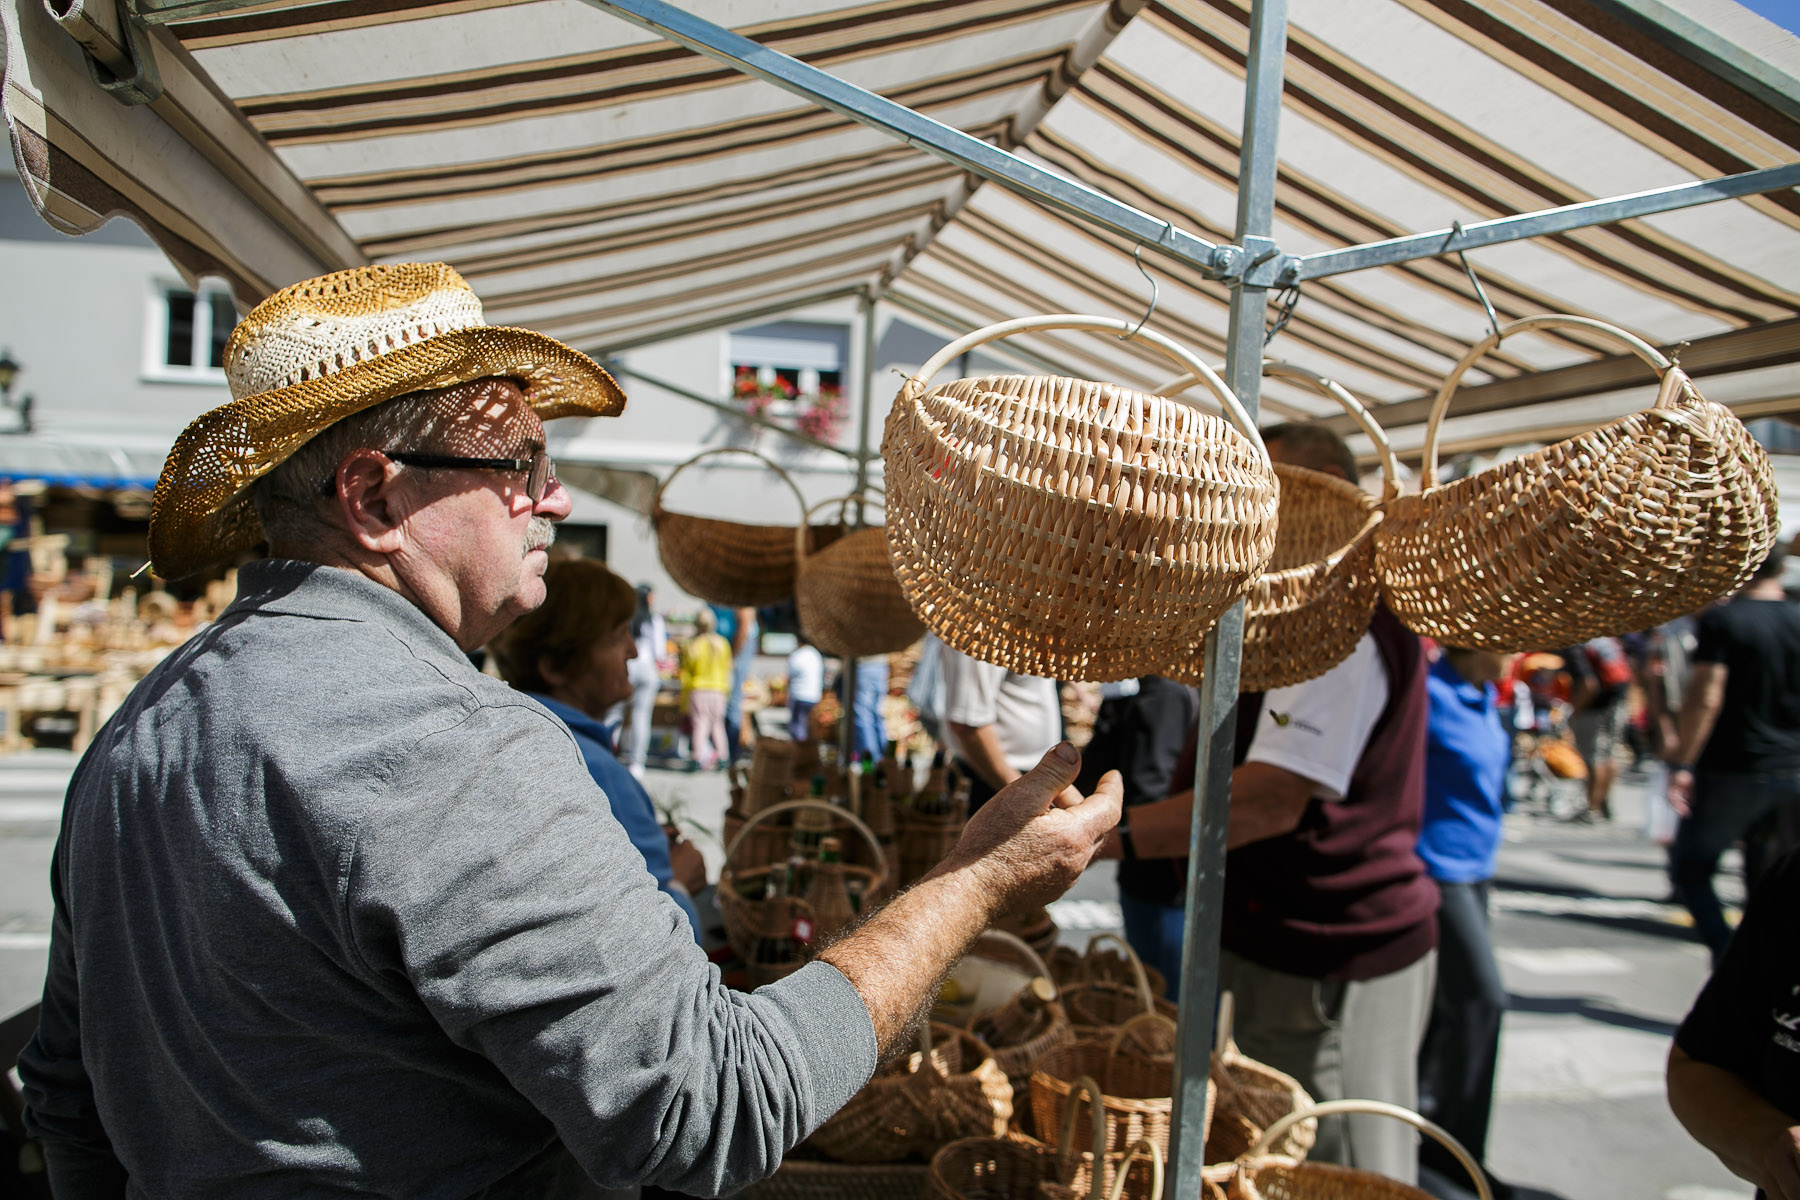 A man in a straw hat observes wooden baskets at the 40th traditional woodenware fair in Ribnica, Slovenia, Sep. 6, 2015.